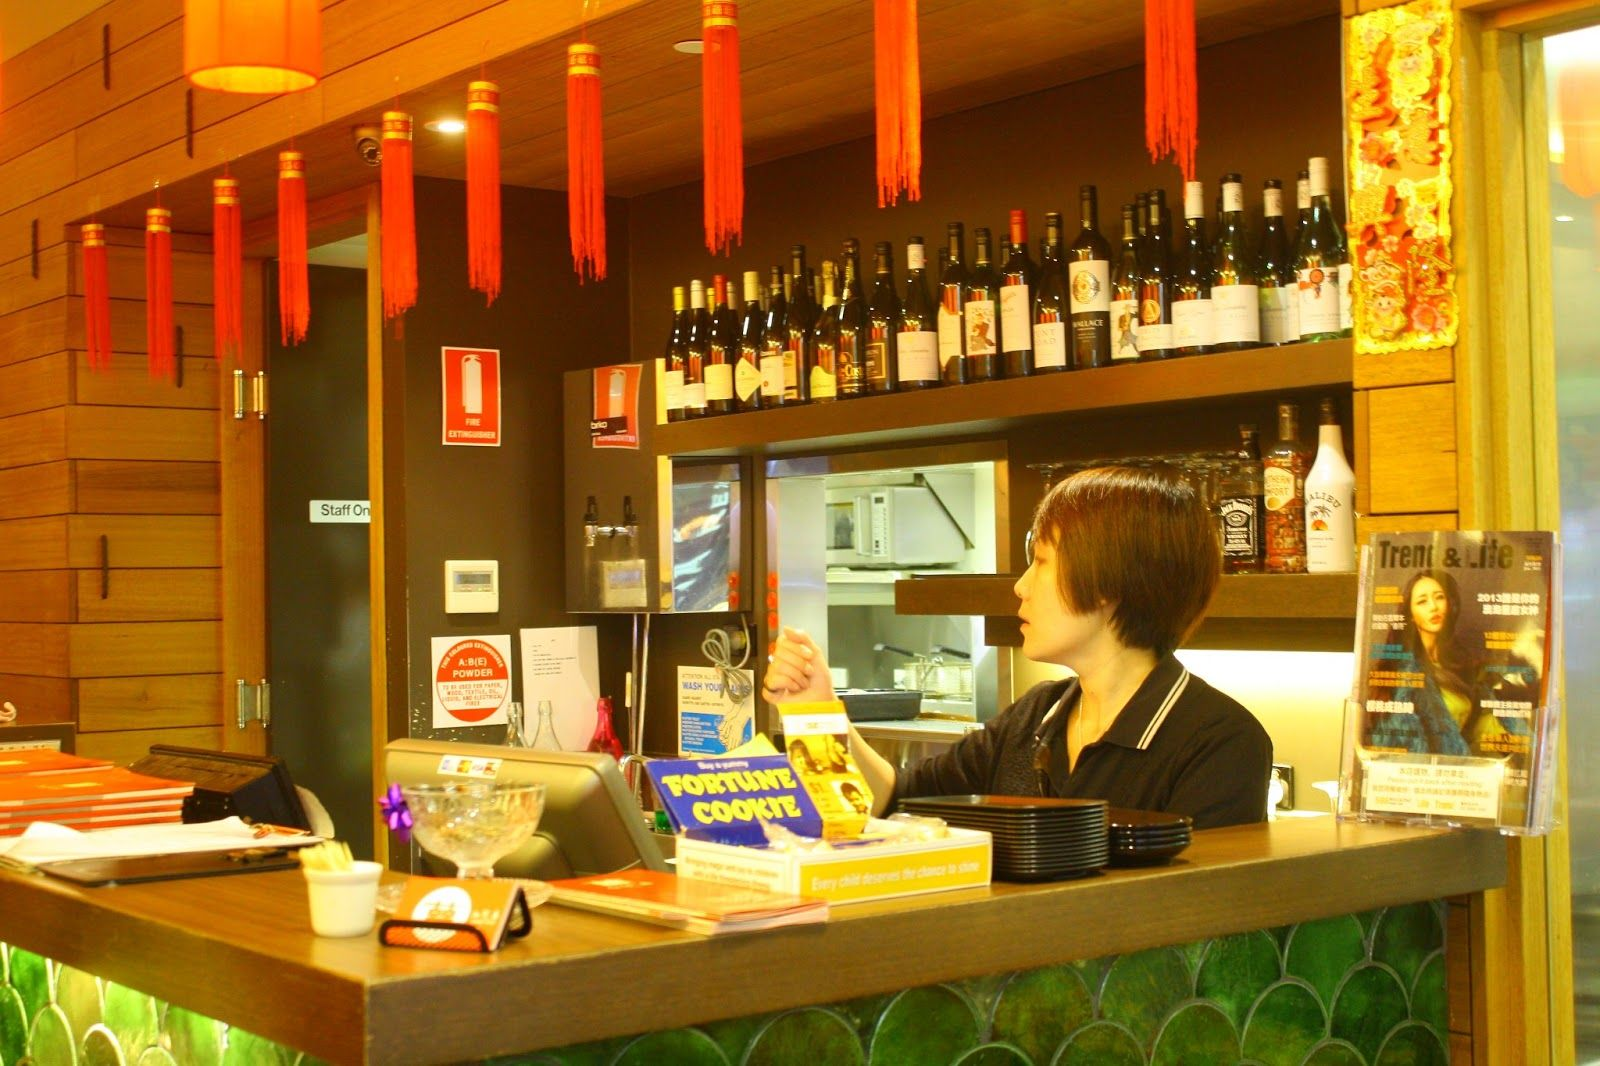 China Red Find Chinese Restaurants Melbourne Best Chinese Takeaway Melbourne Chinese Restaurants Melbourne Chinese Restaurant Melbourne Restaurant